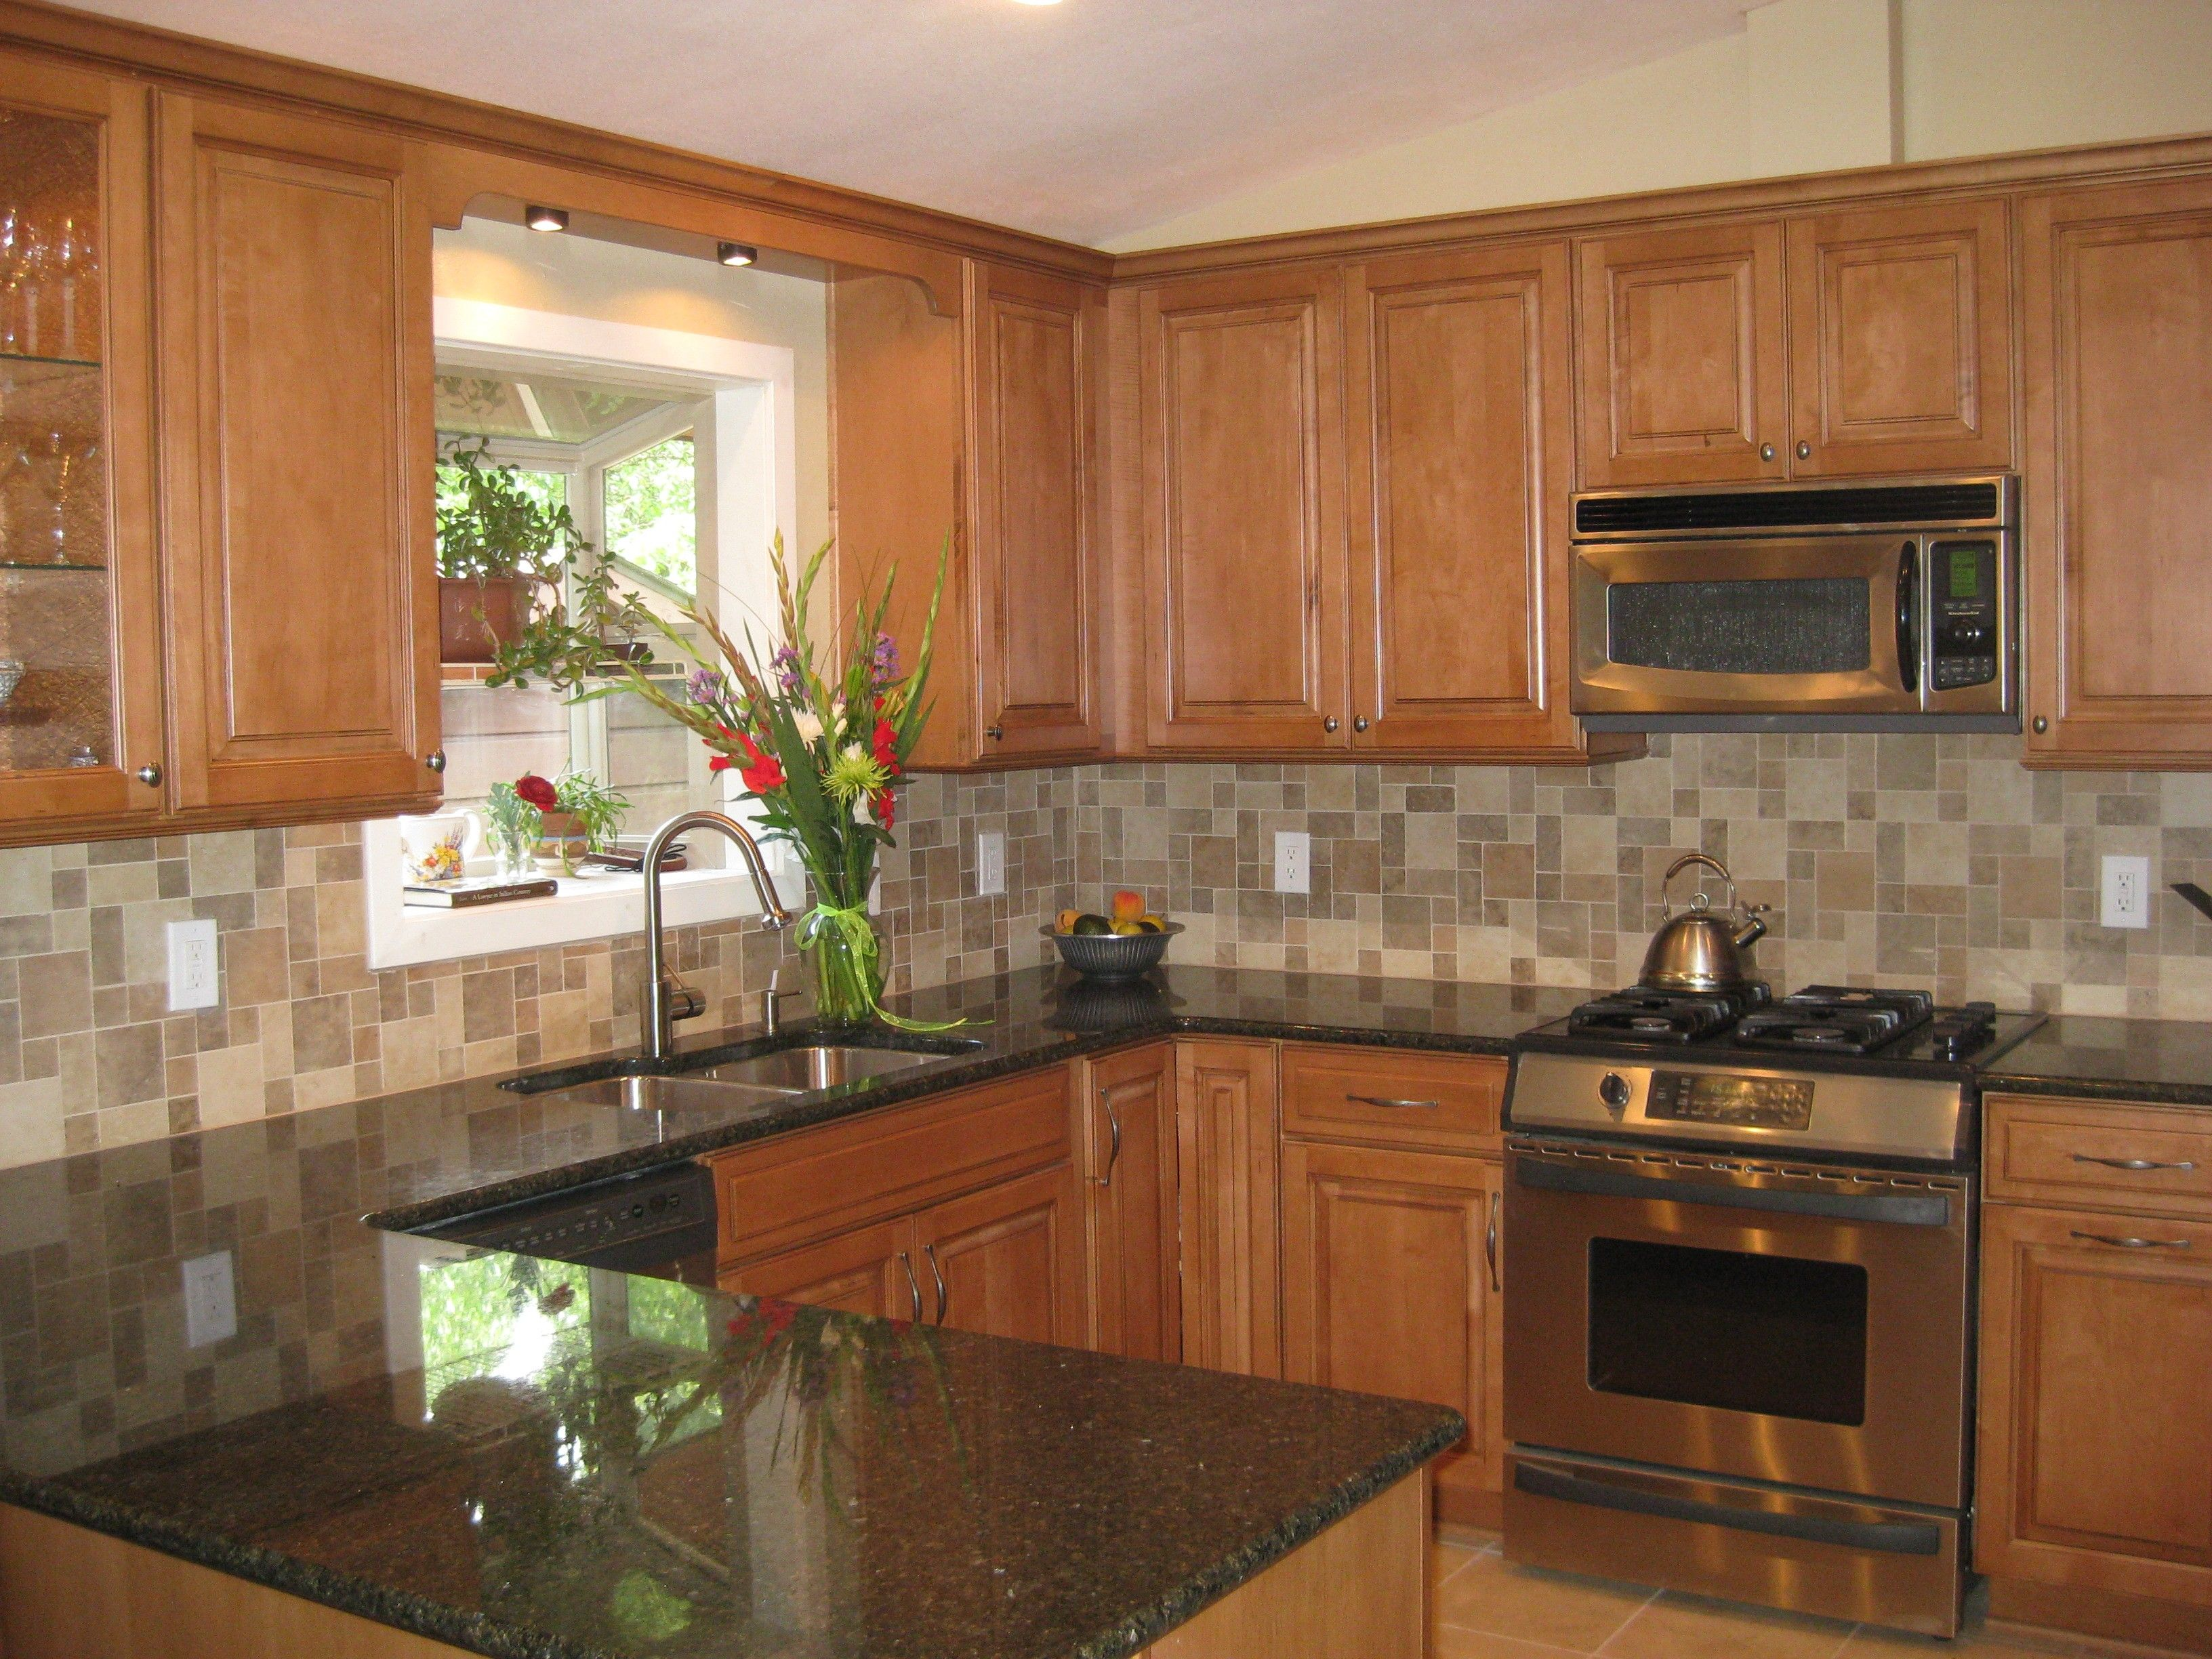 wood cabinets with marble countertops - Google Search ... on What Color Granite Goes With Honey Maple Cabinets  id=97340